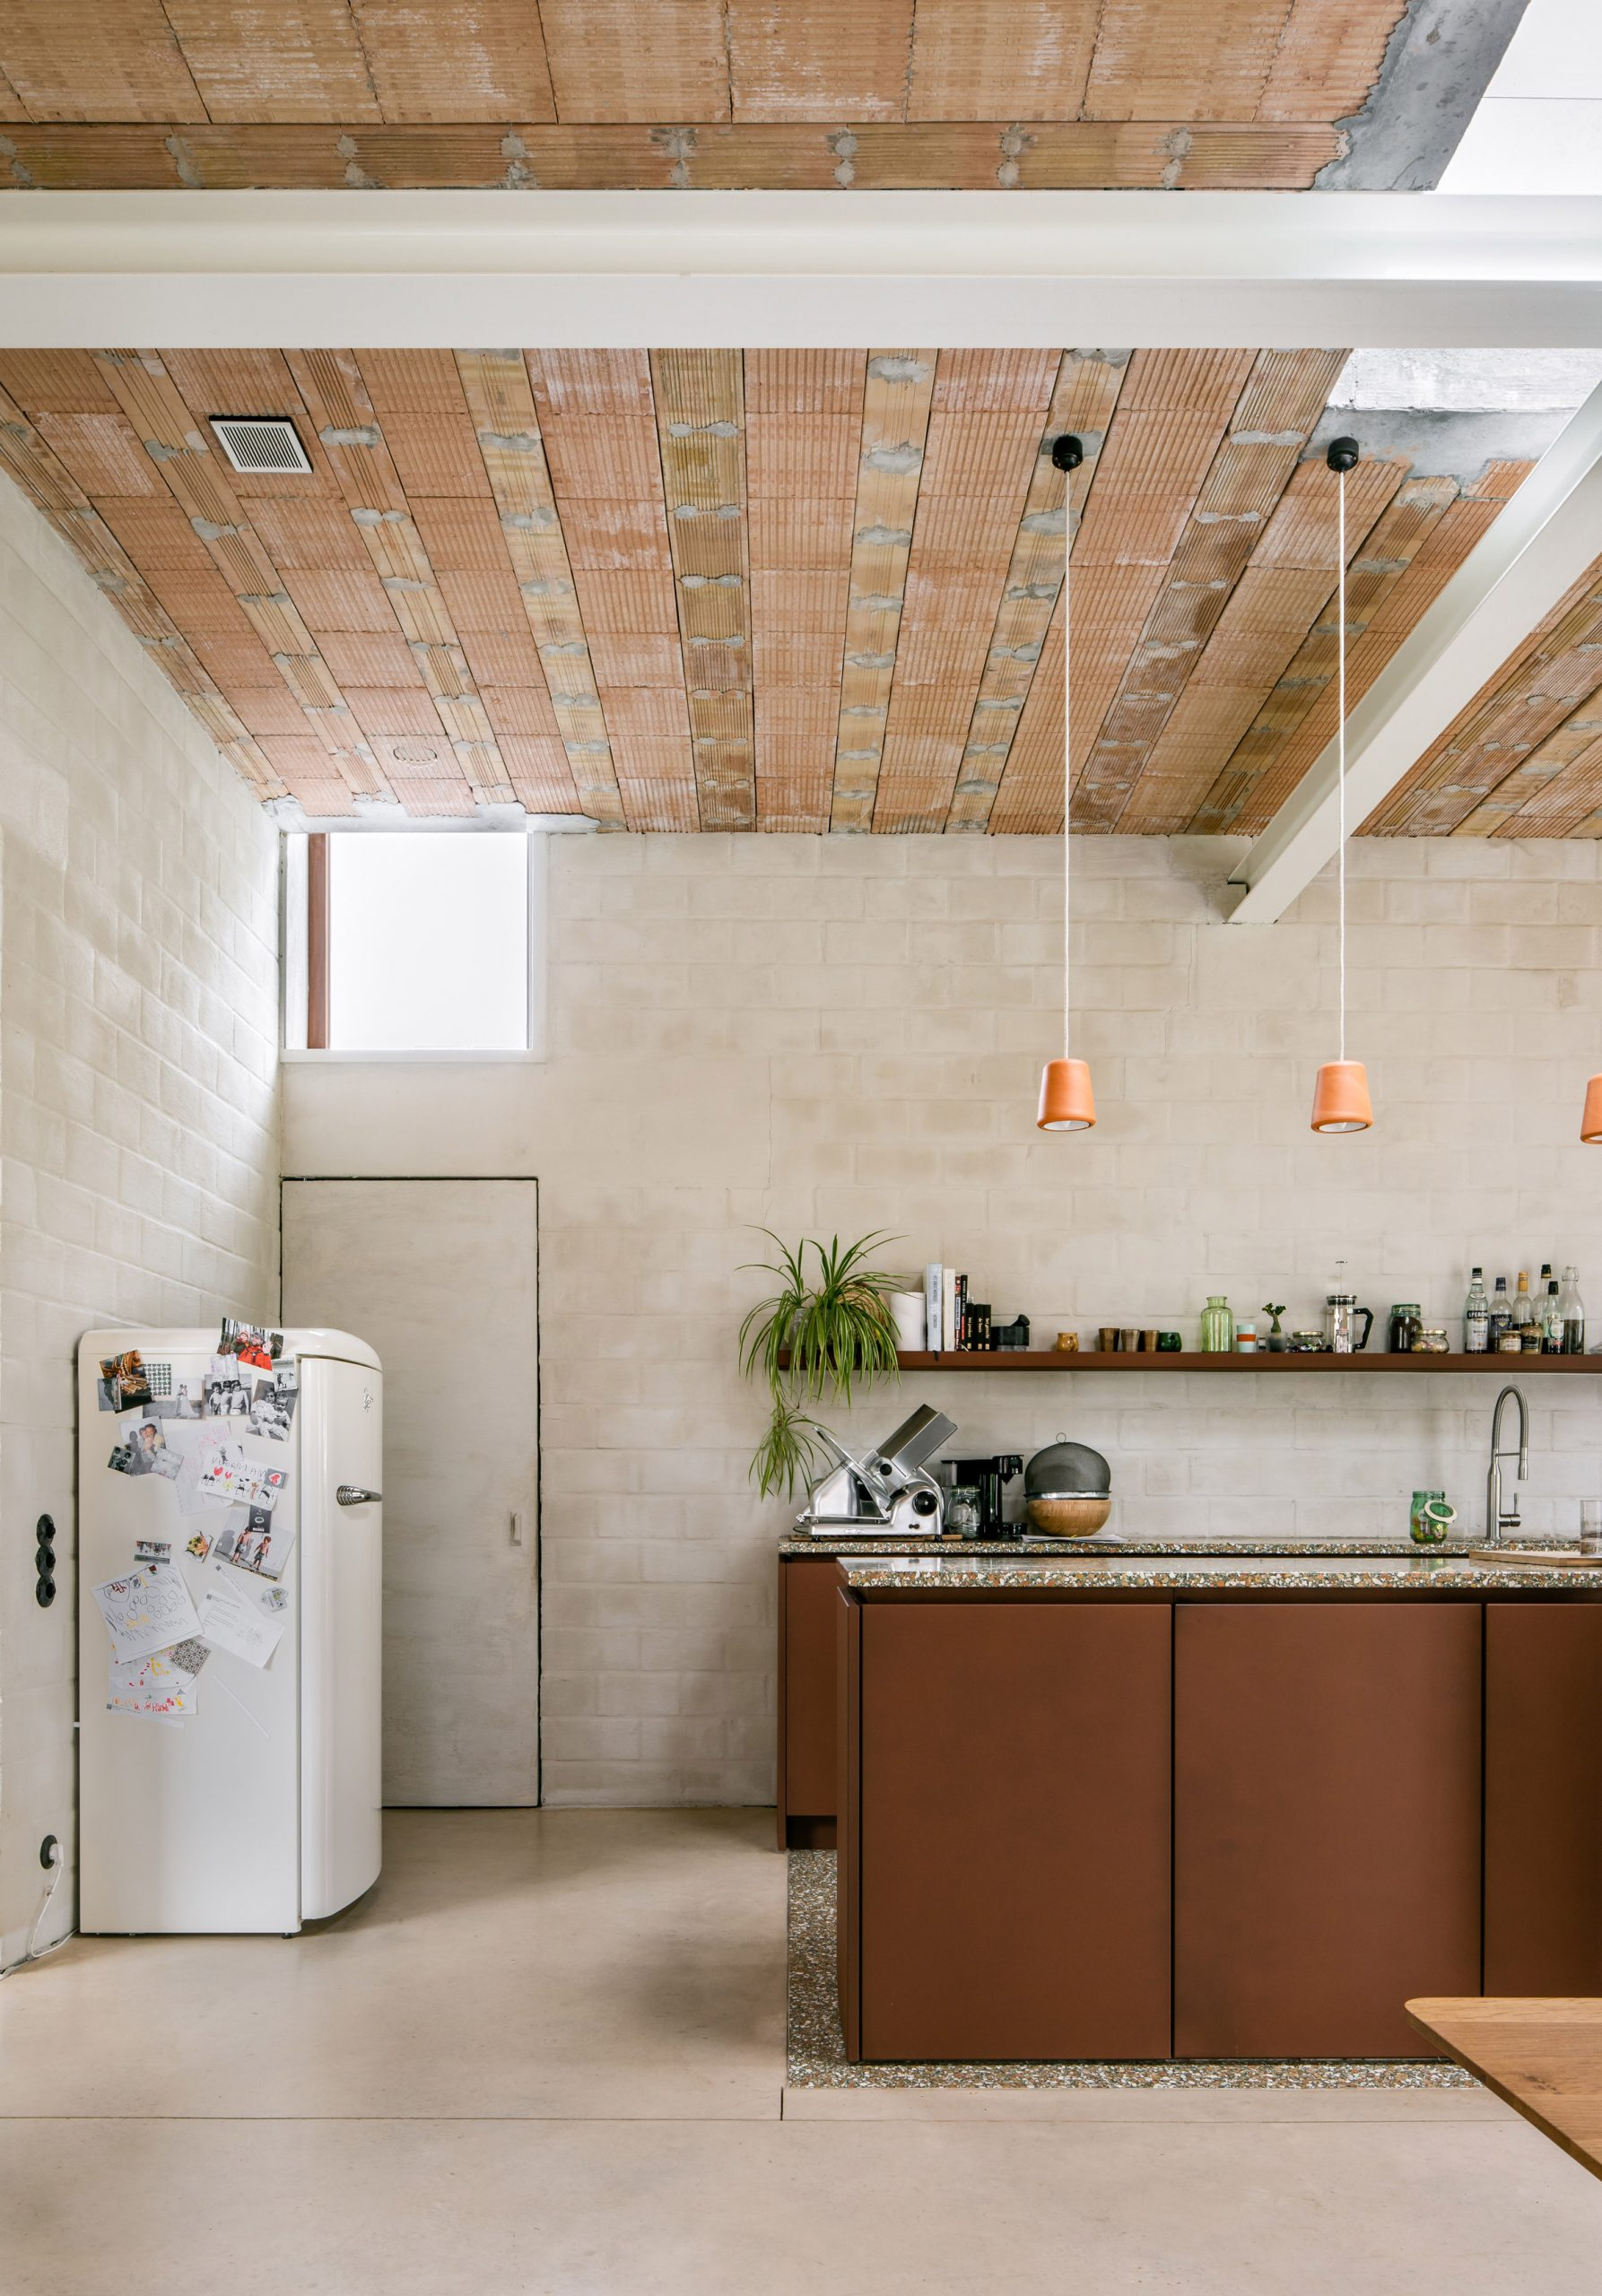 A kitchen with a tall ceiling and rough plaster walls